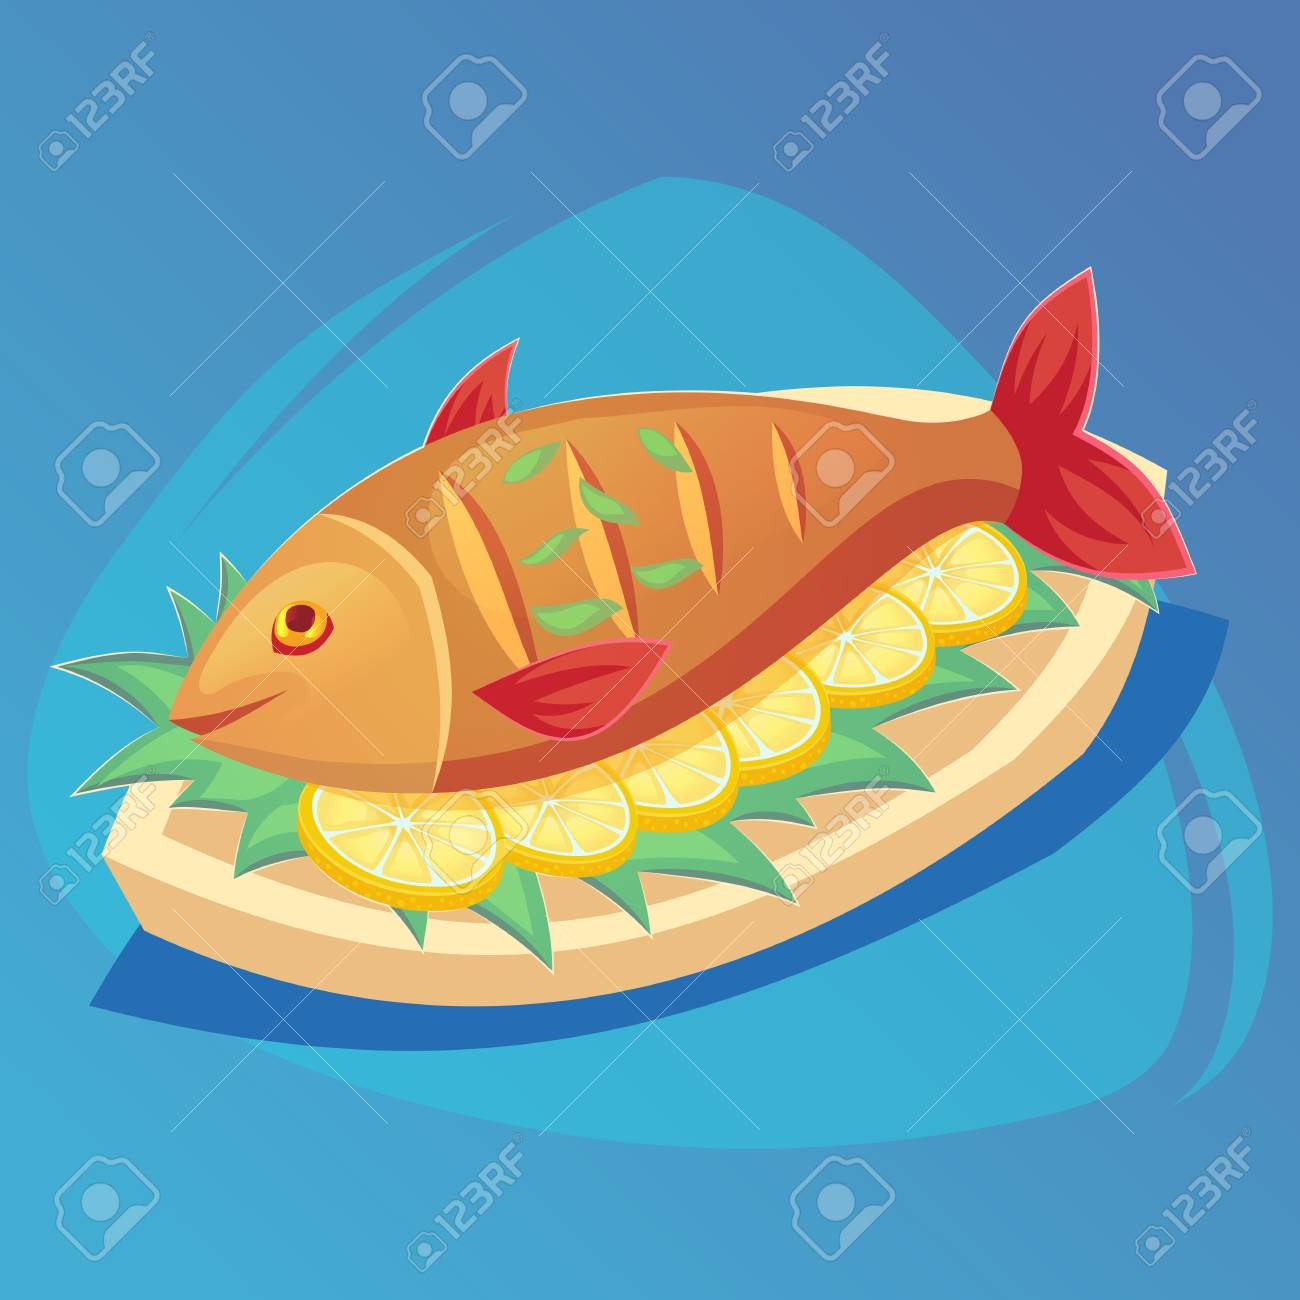 Fish Icon Crucian On White Plate With Lemon And Herbs Food Royalty Free Cliparts Vectors And Stock Illustration Image 102007967